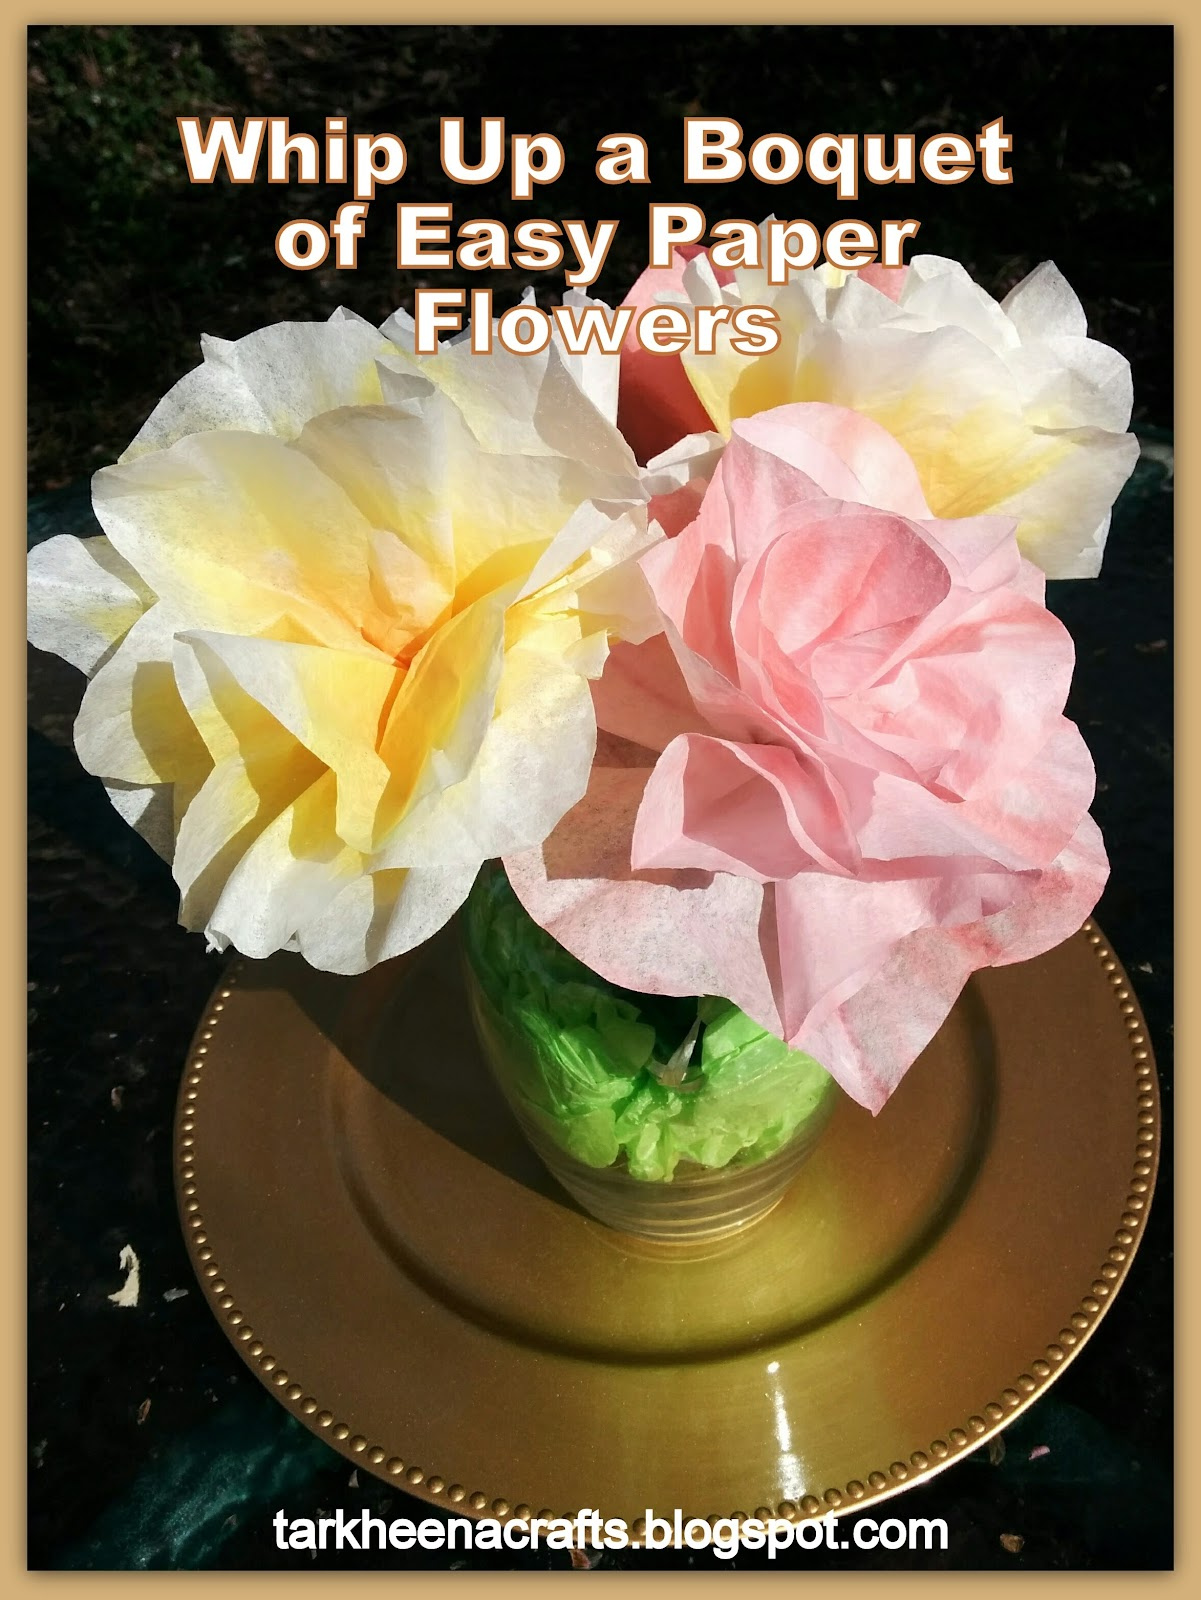 Tarkheena crafts quick n dirty coffee filter flowers its time for a new quick n dirty tutorial coffee filter flowers izmirmasajfo